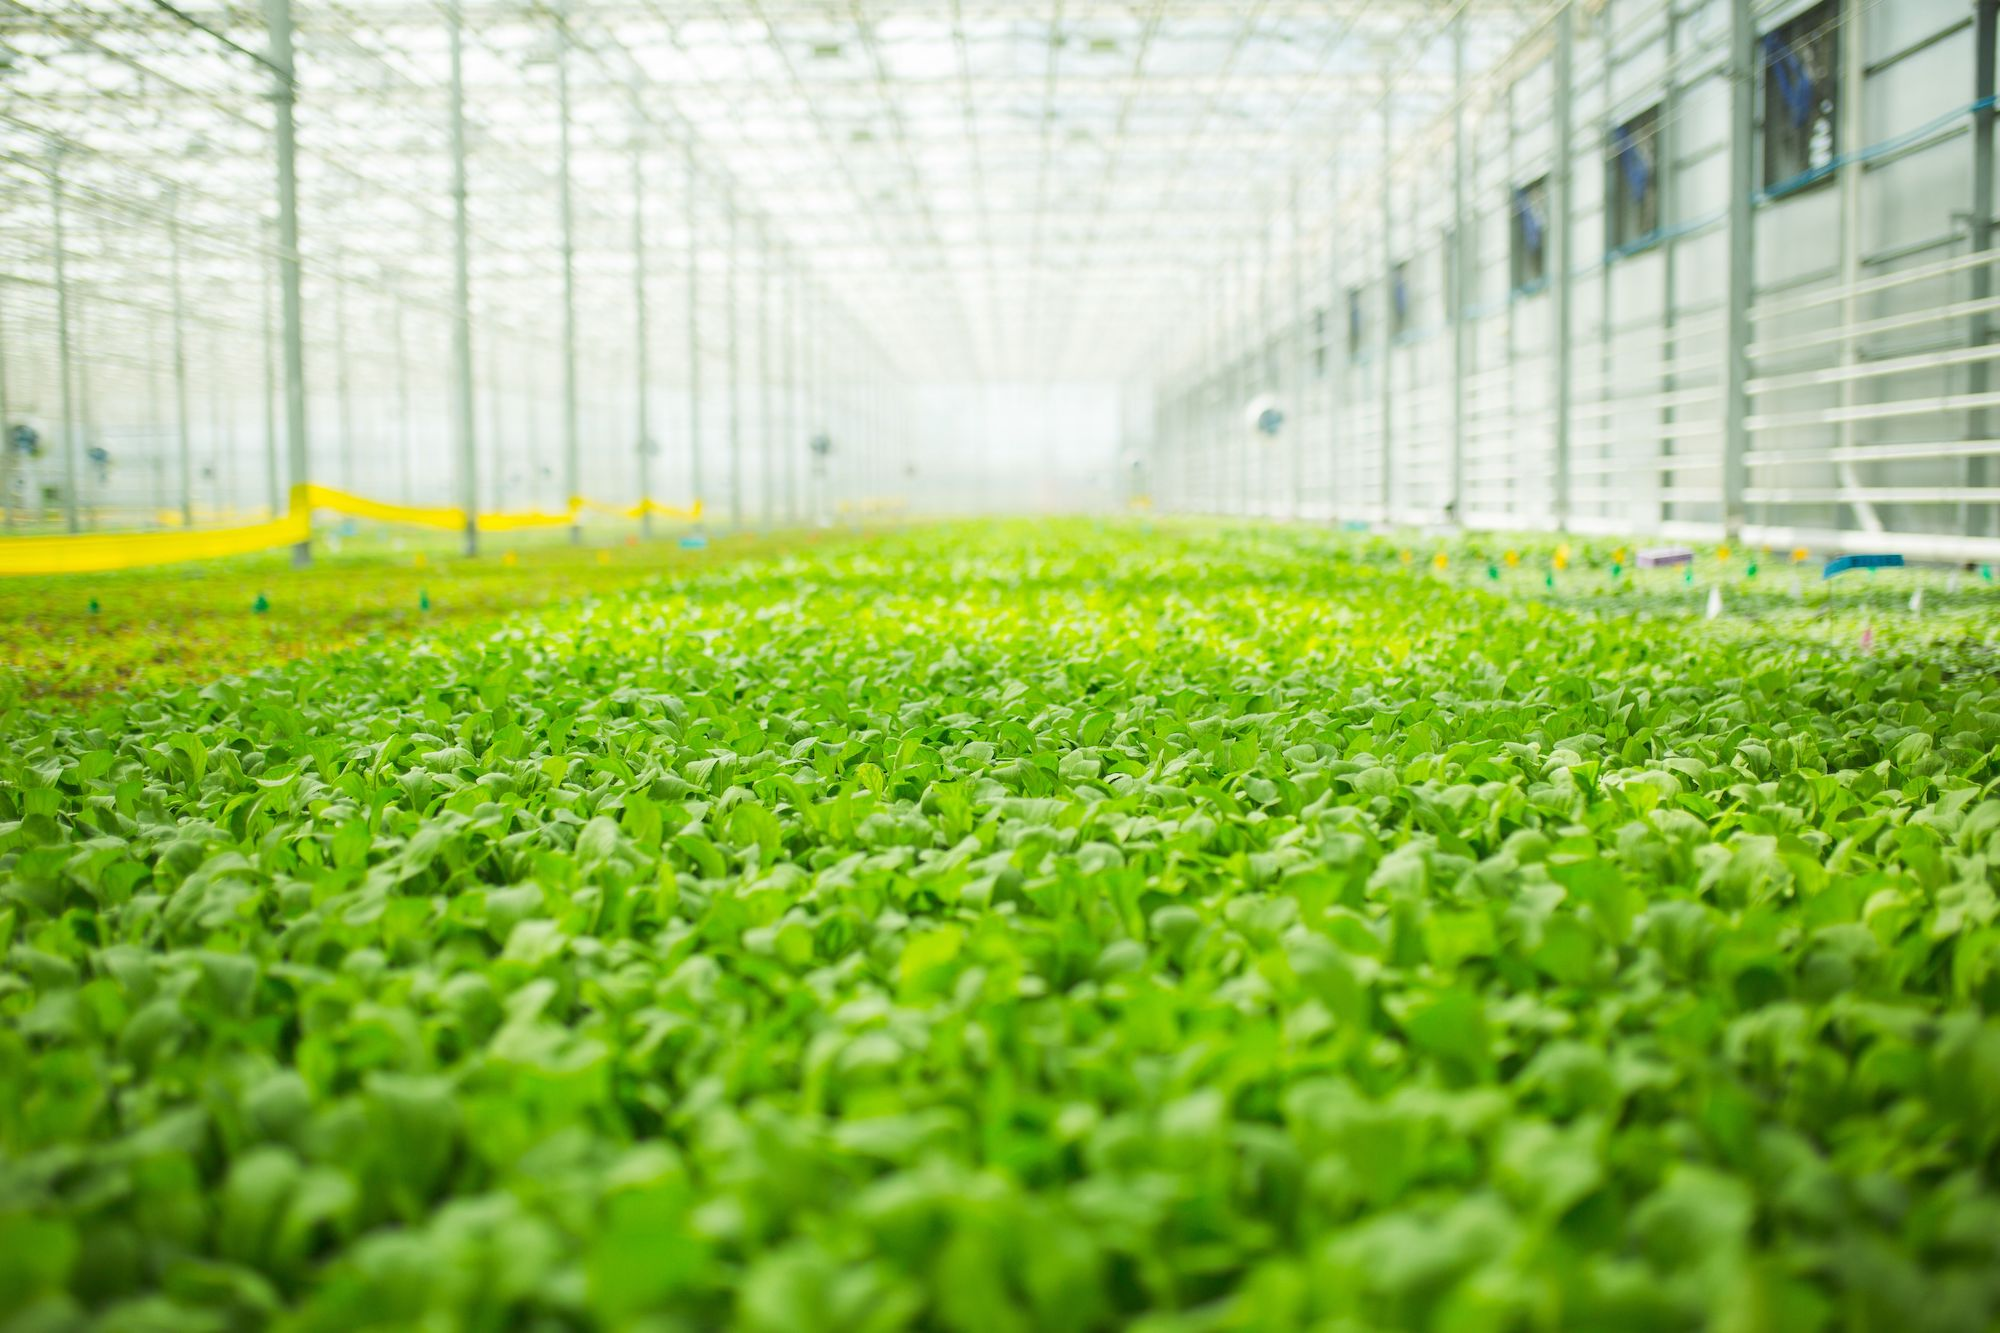 BrightFarms Greenhouse Hydroponic Field of Spinach Arugula | CEA | Grown Indoors